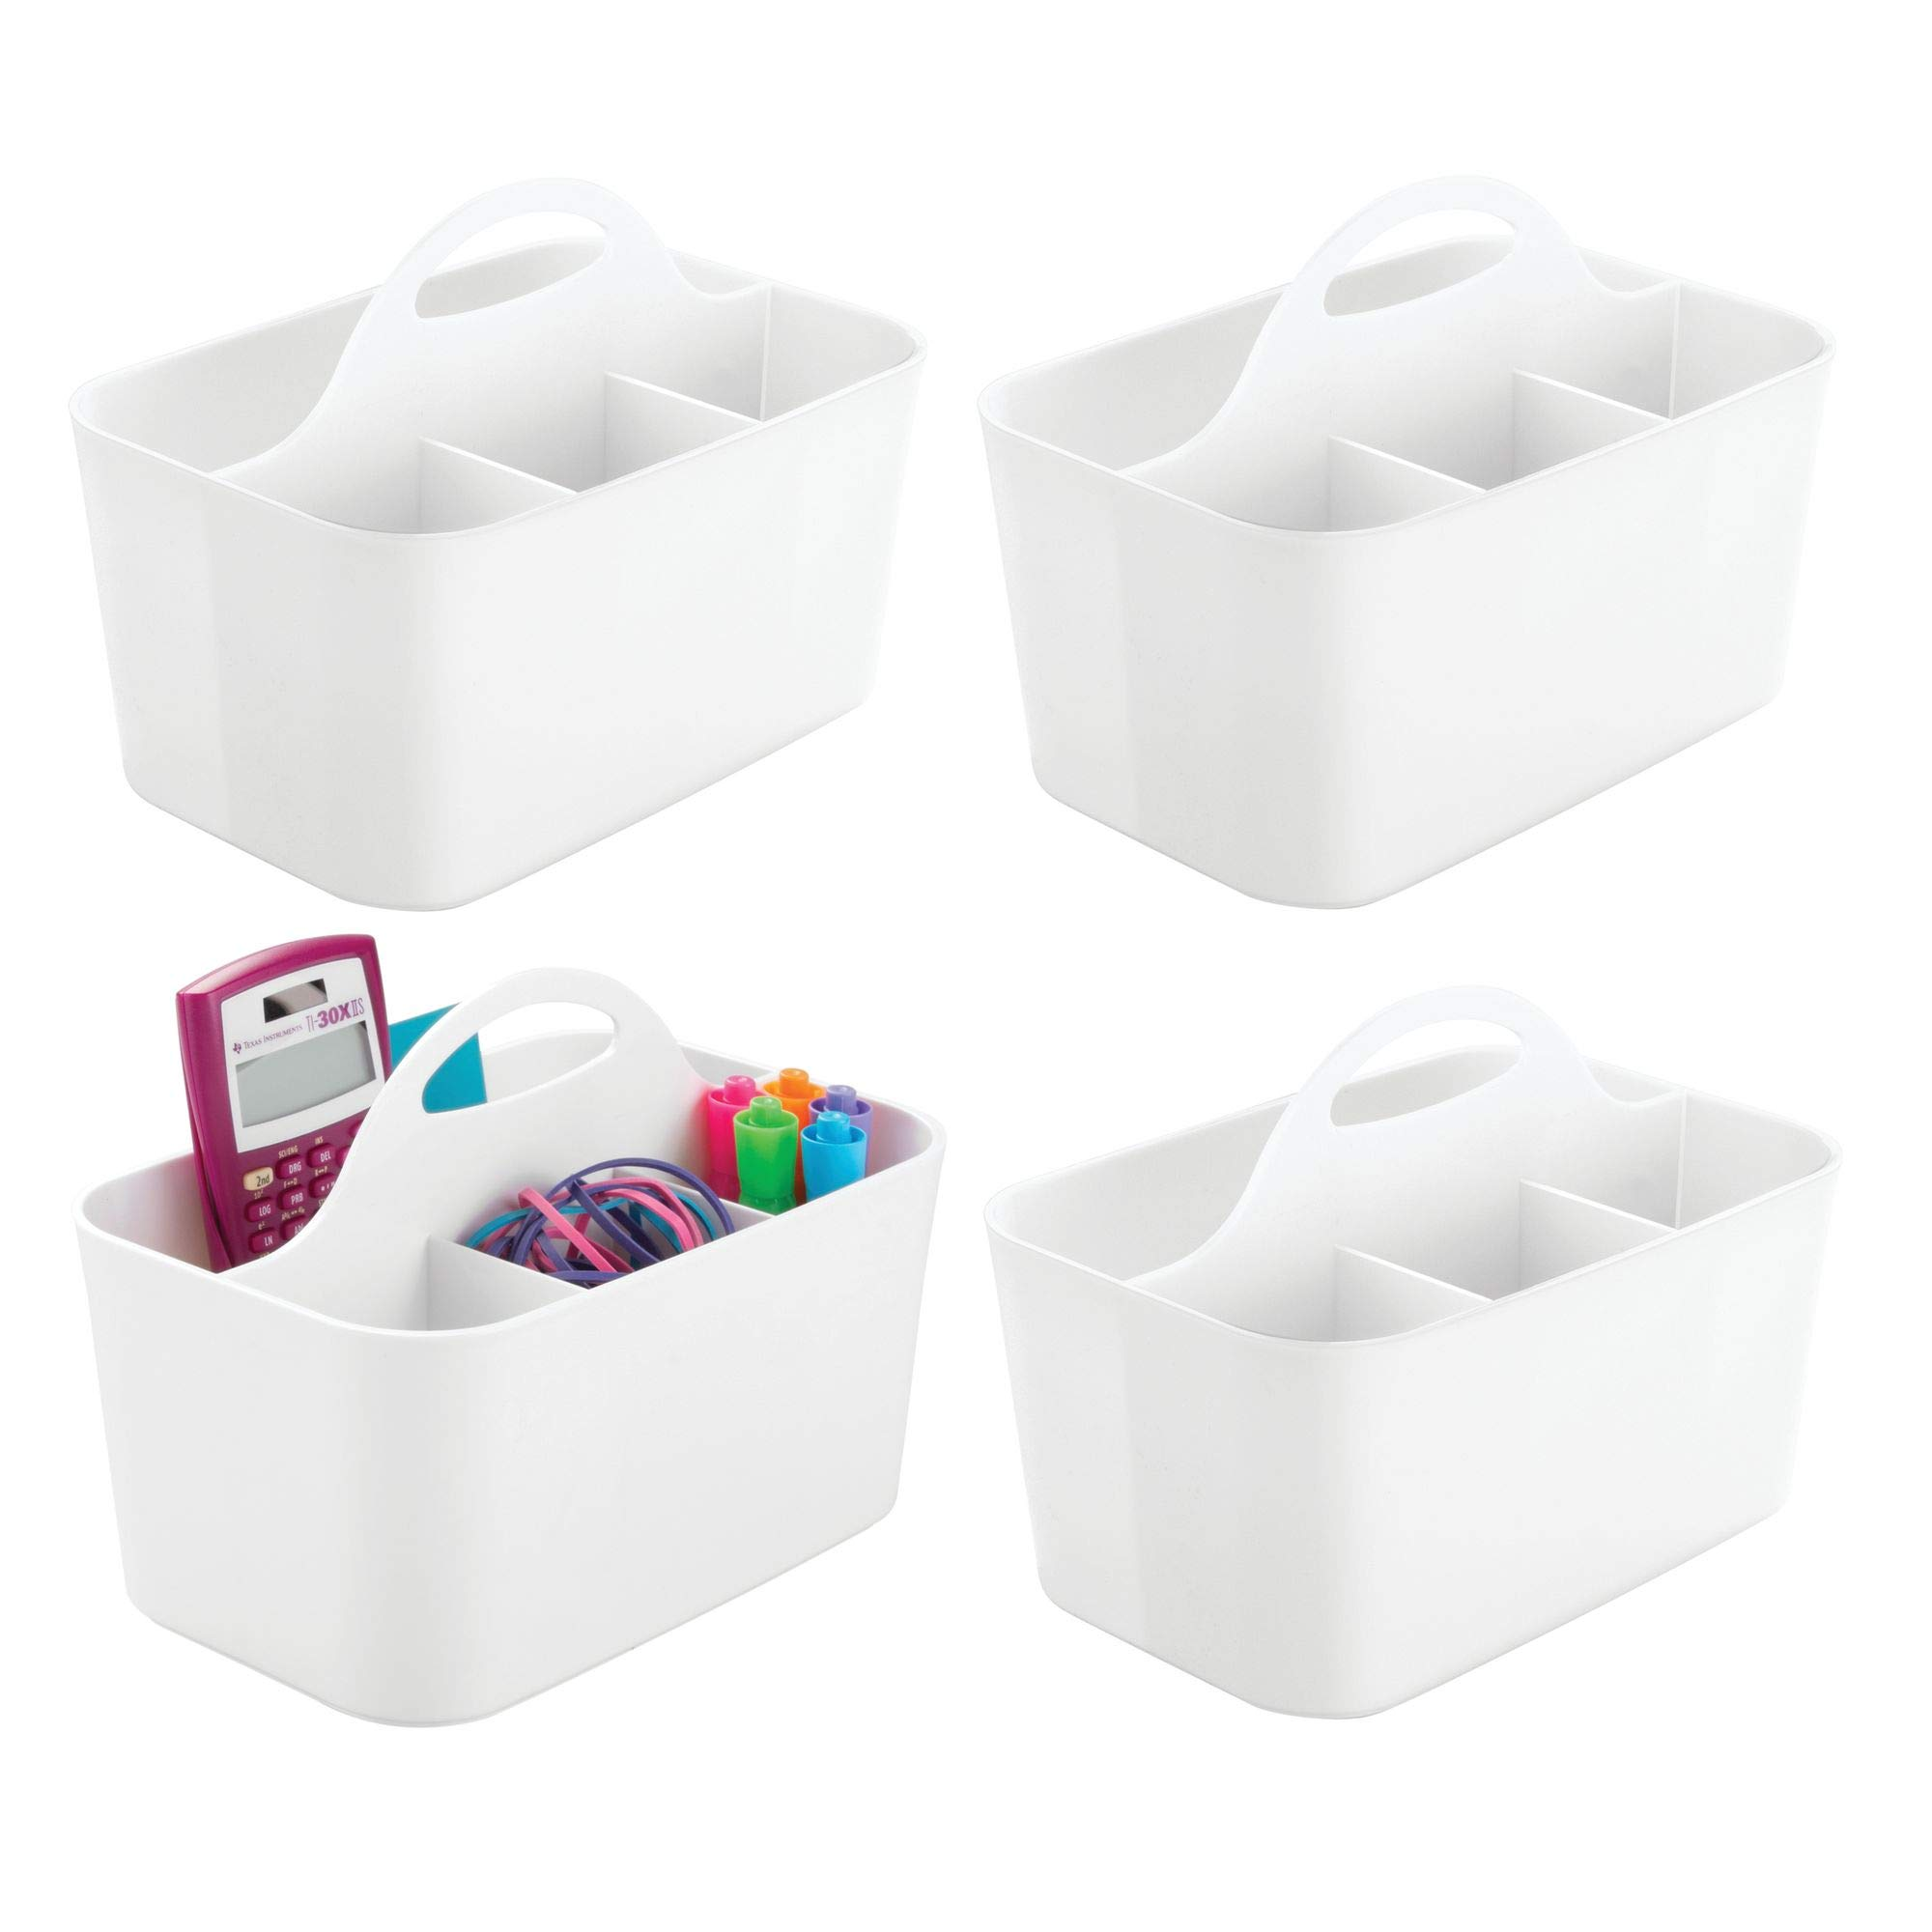 mDesign Office Desk Organization Caddy for Office or Craft Use - Pack of 4, White